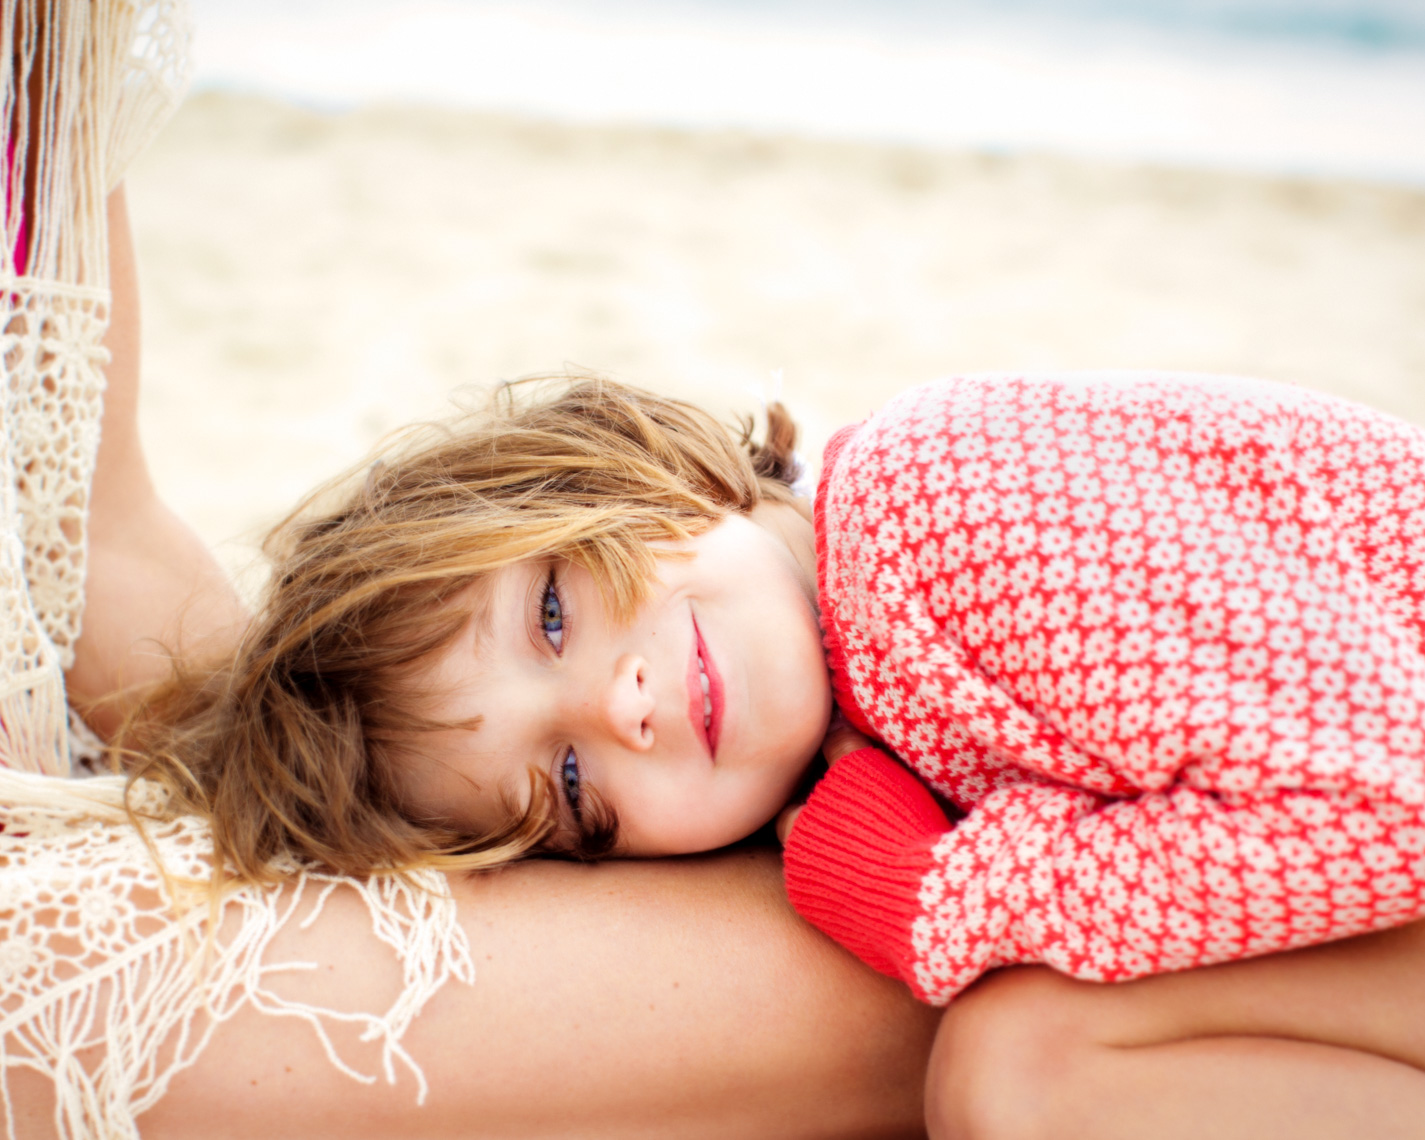 Lifestyle portrait of child | Tosca Radigonda Photography